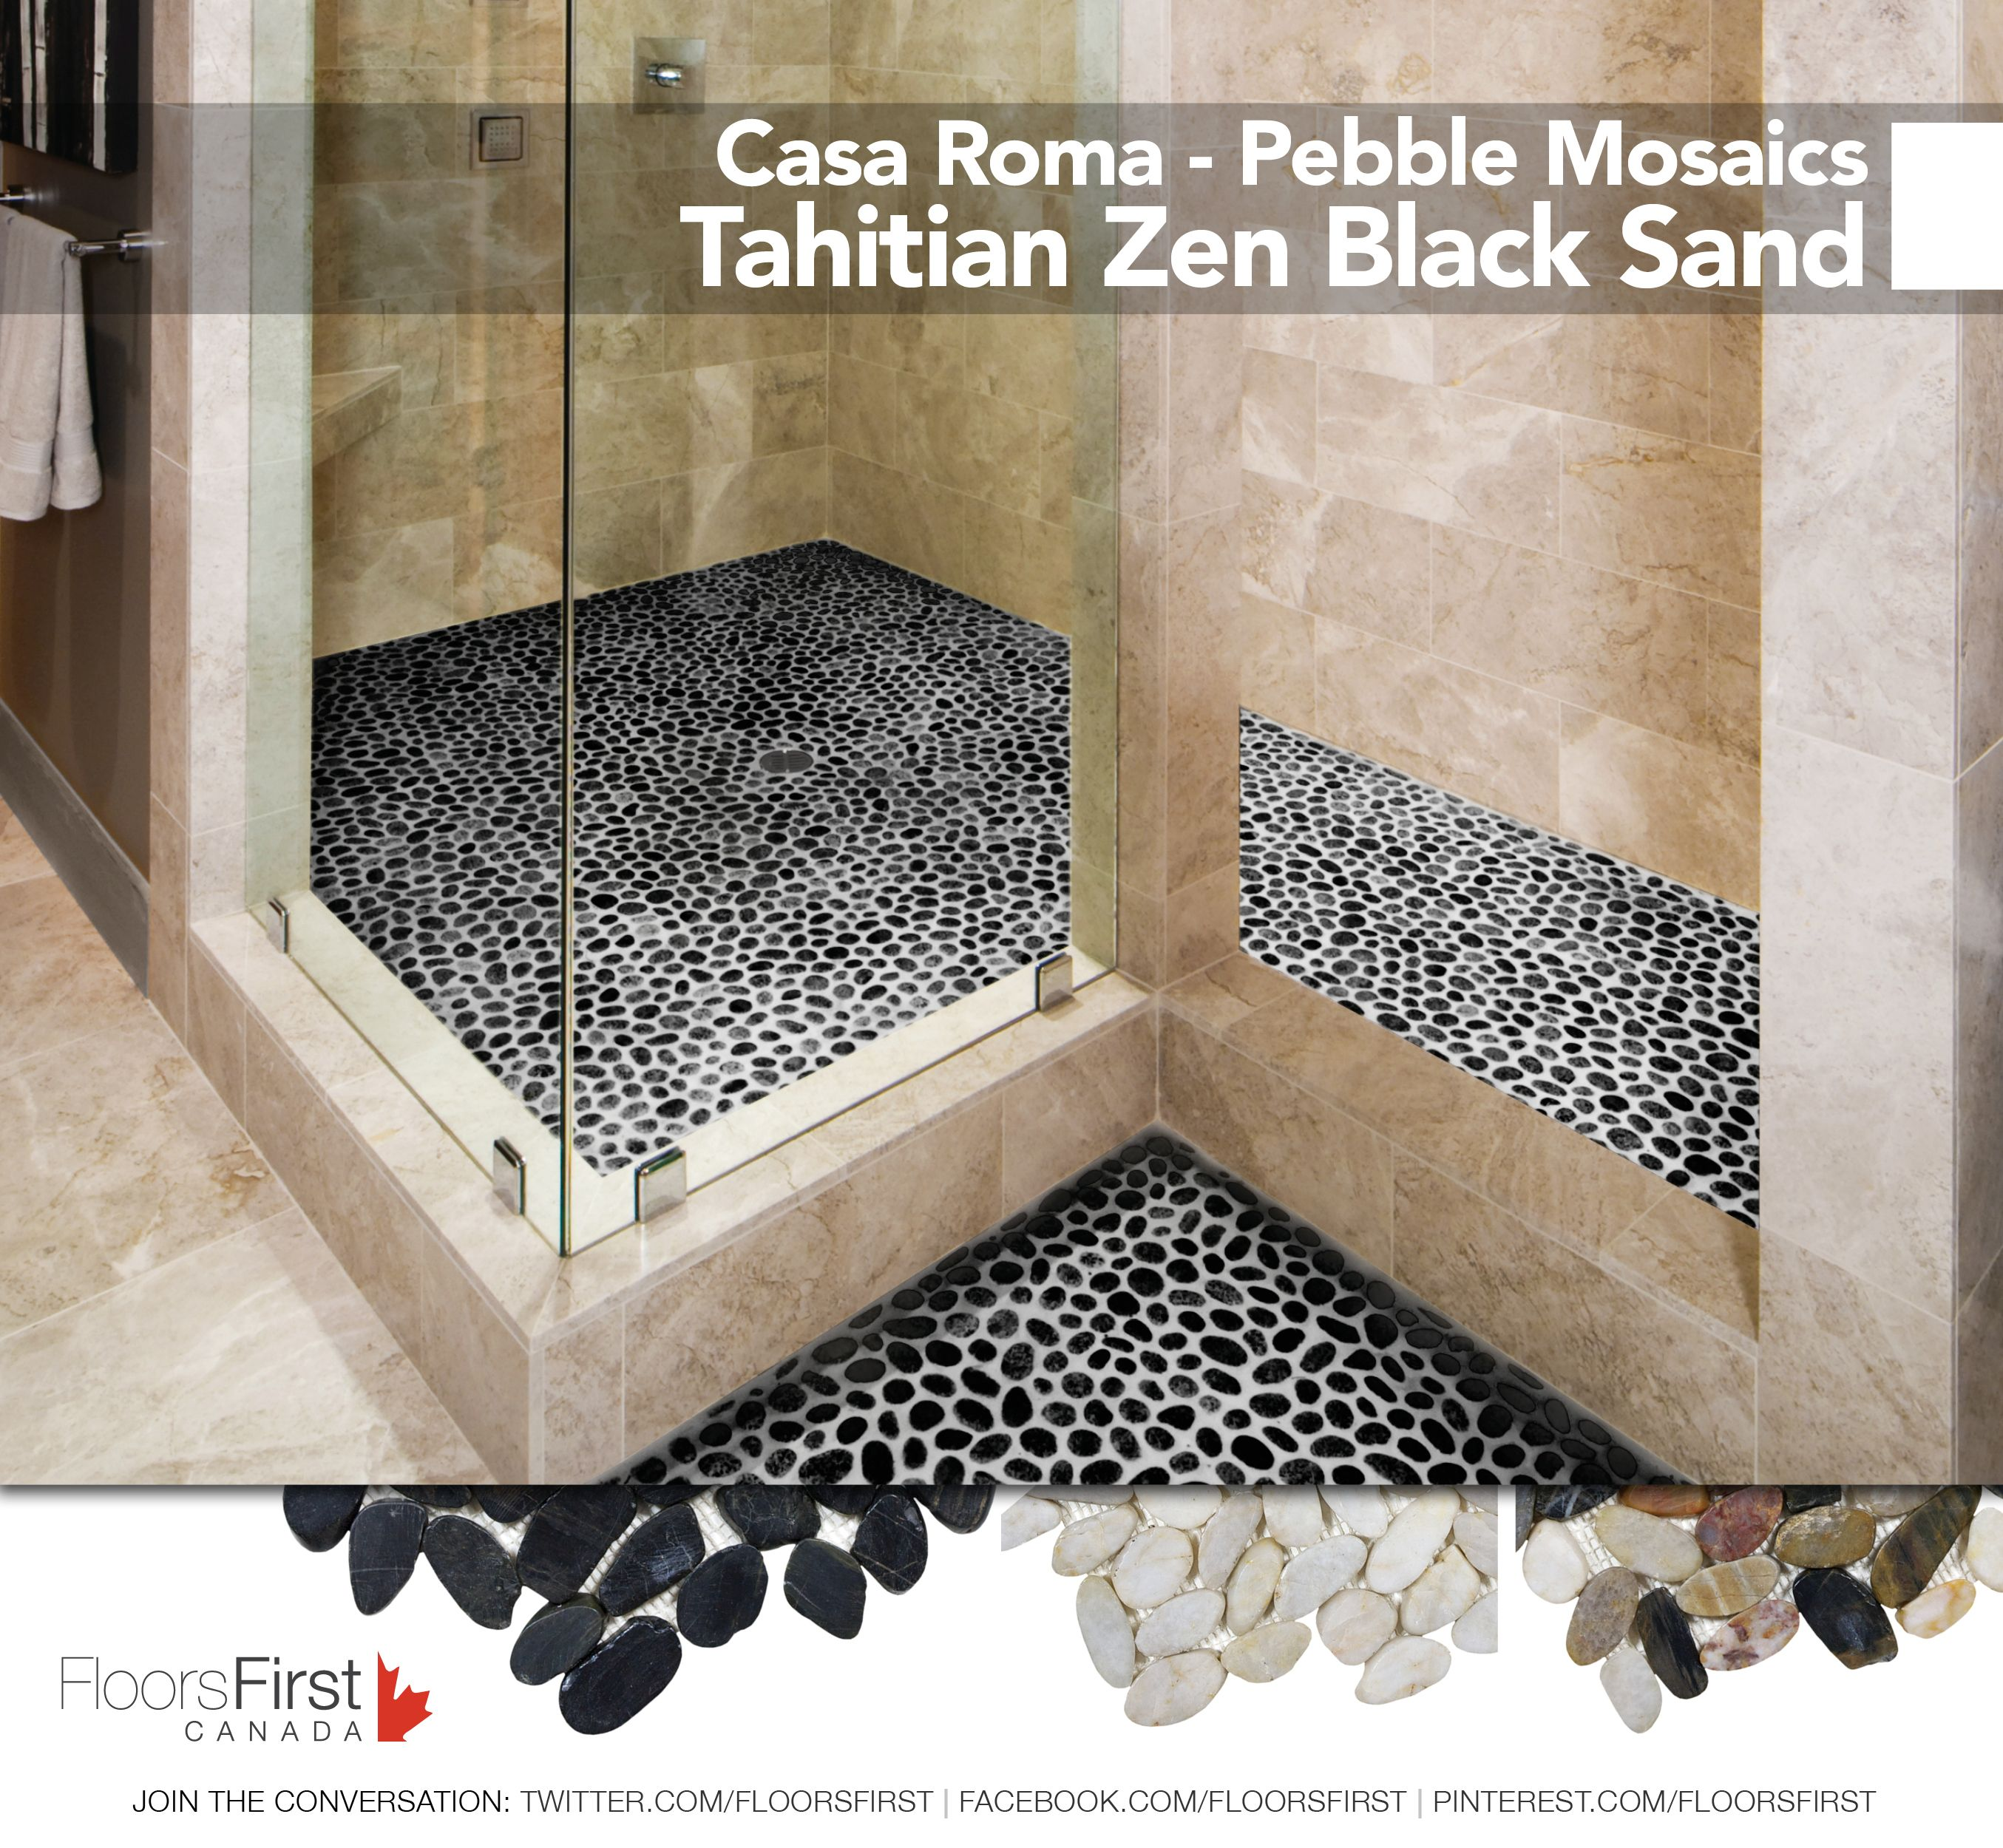 Casa roma pebble mosaics flooring ceramic tiles design casa roma pebble mosaics flooring ceramic tiles design decor doublecrazyfo Gallery